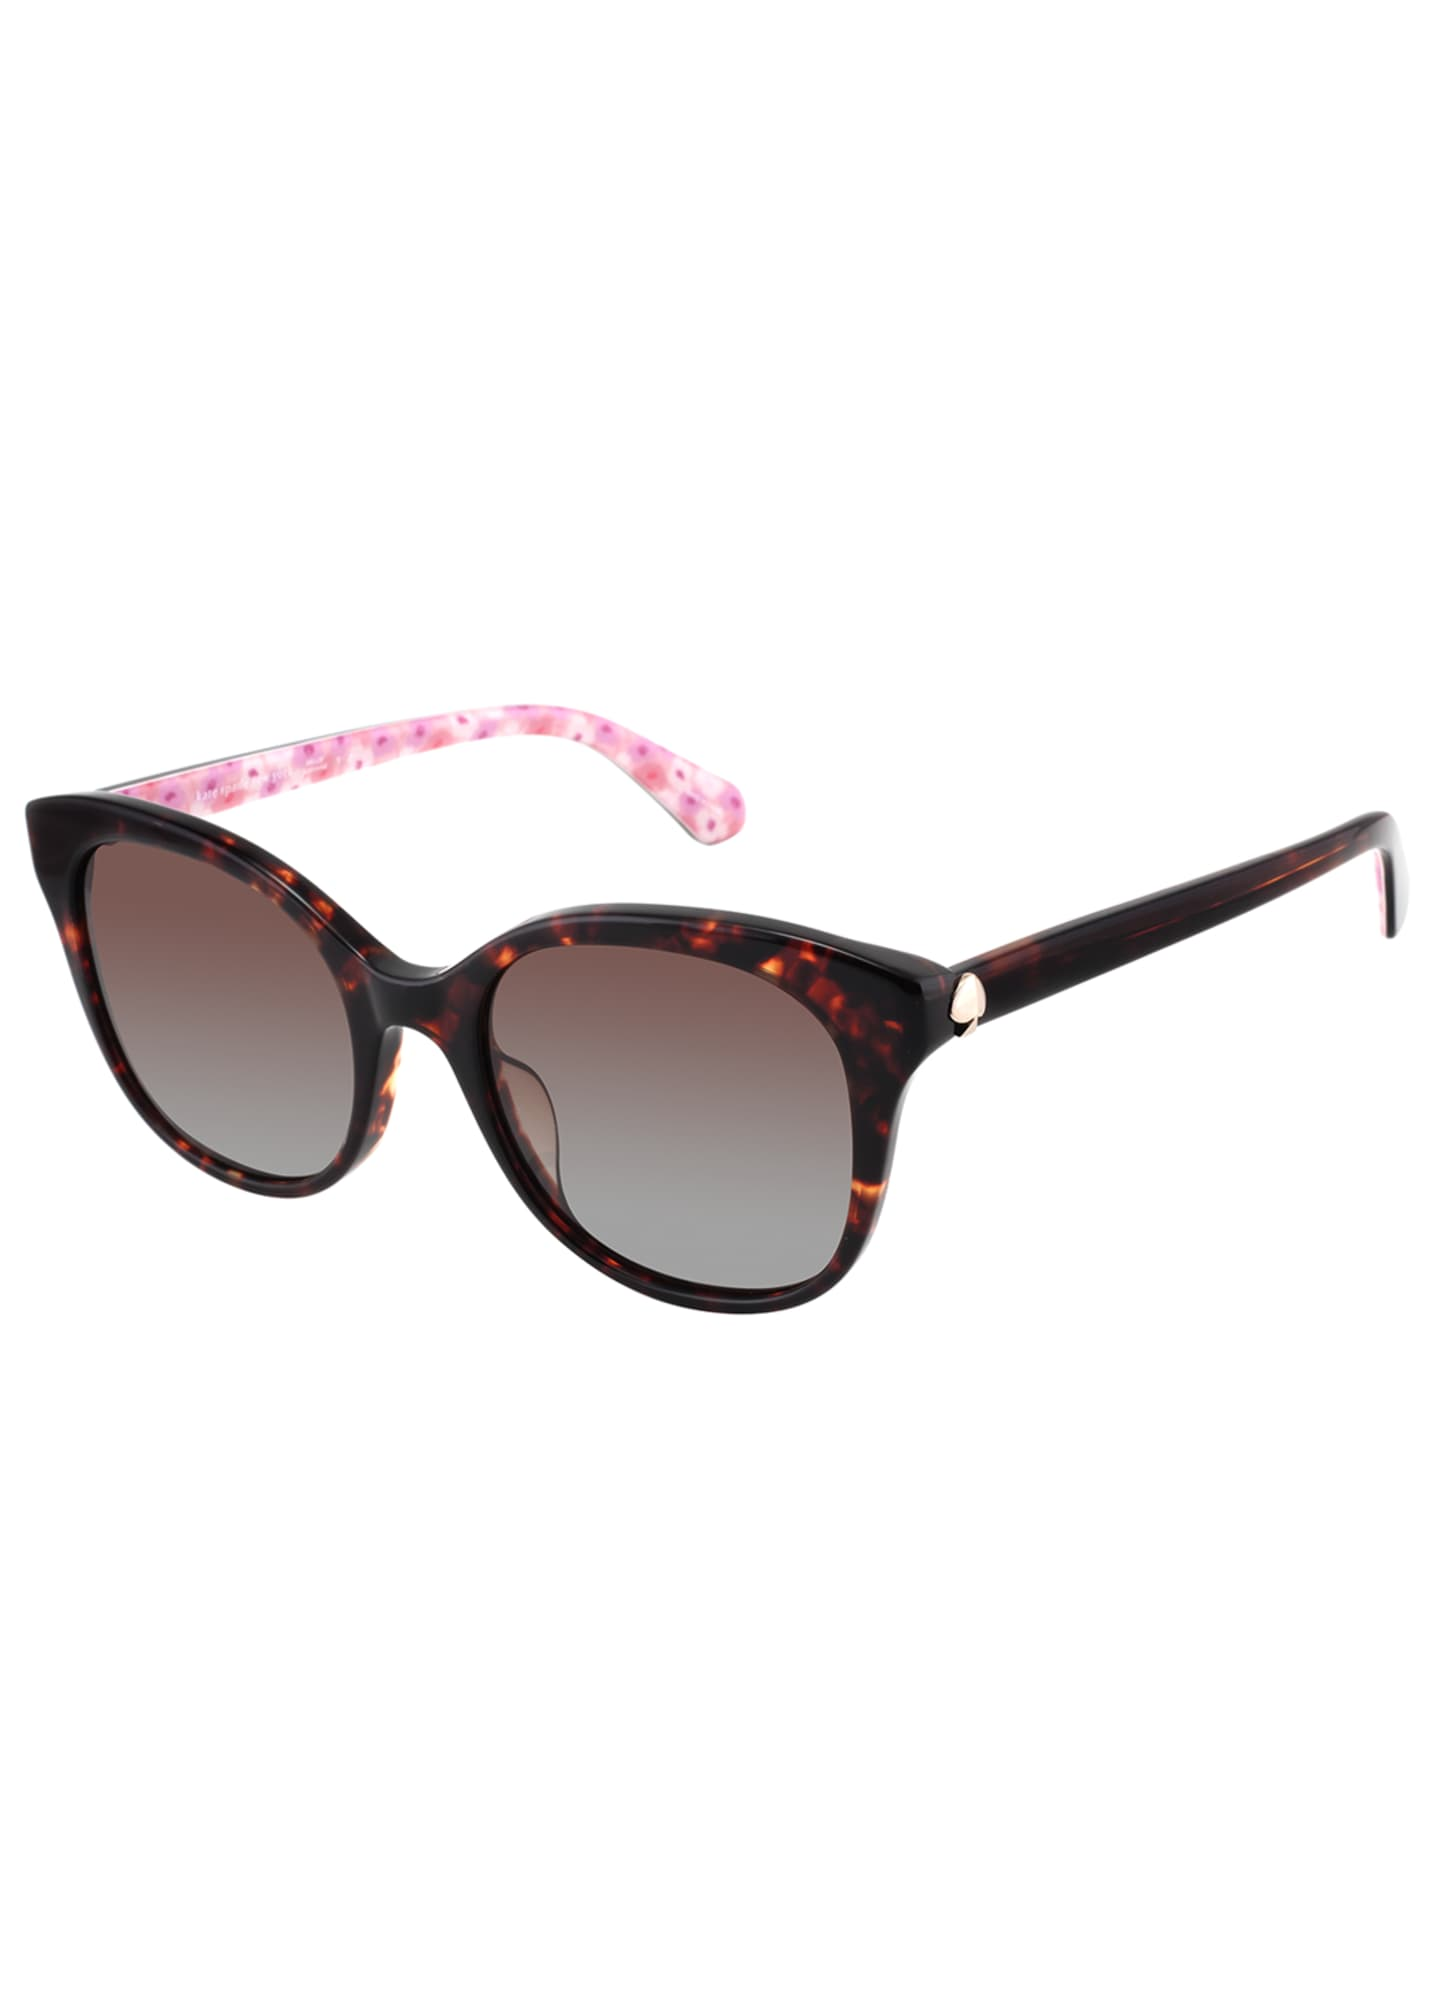 Image 1 of 1: bianka round acetate sunglasses, pink